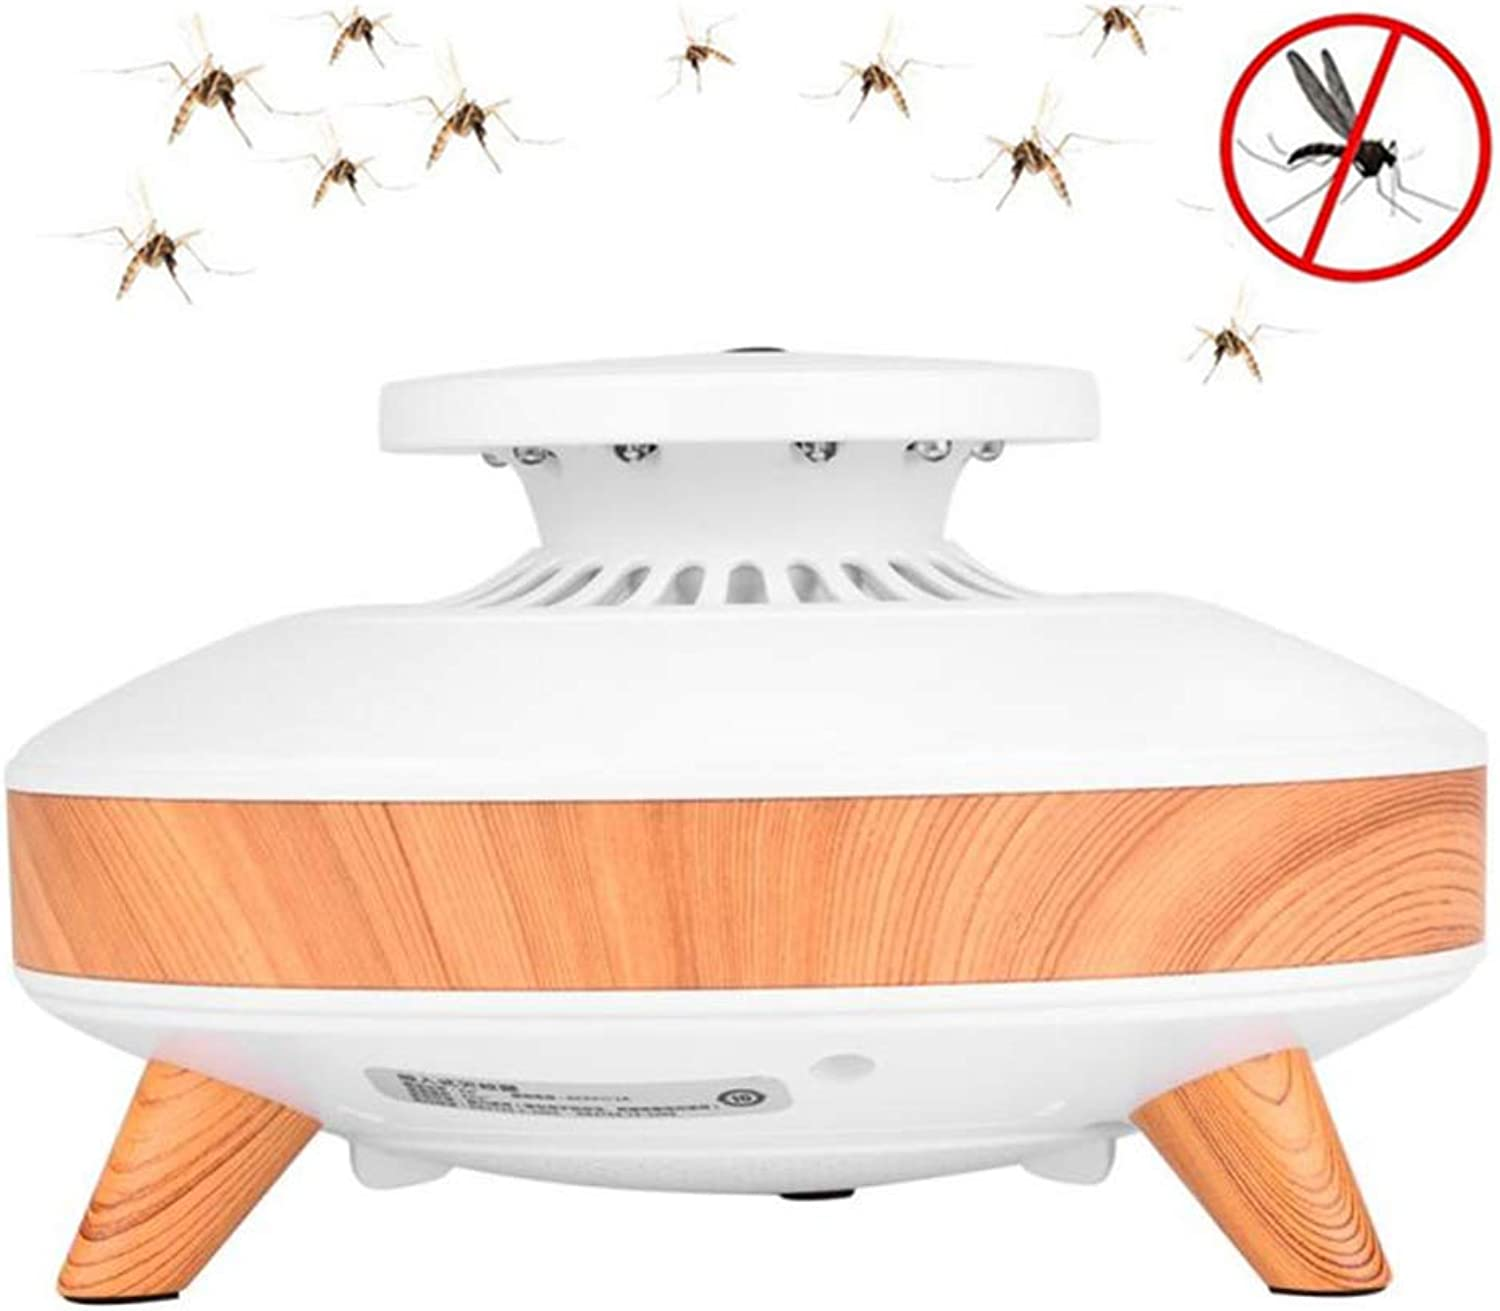 Bug Zapper Indoor Mosquito Killer Trap Lamp Electronic Insect Killer, USB Powered,Nontoxic,NonChemical,for Indoor Bedroom Kitchen